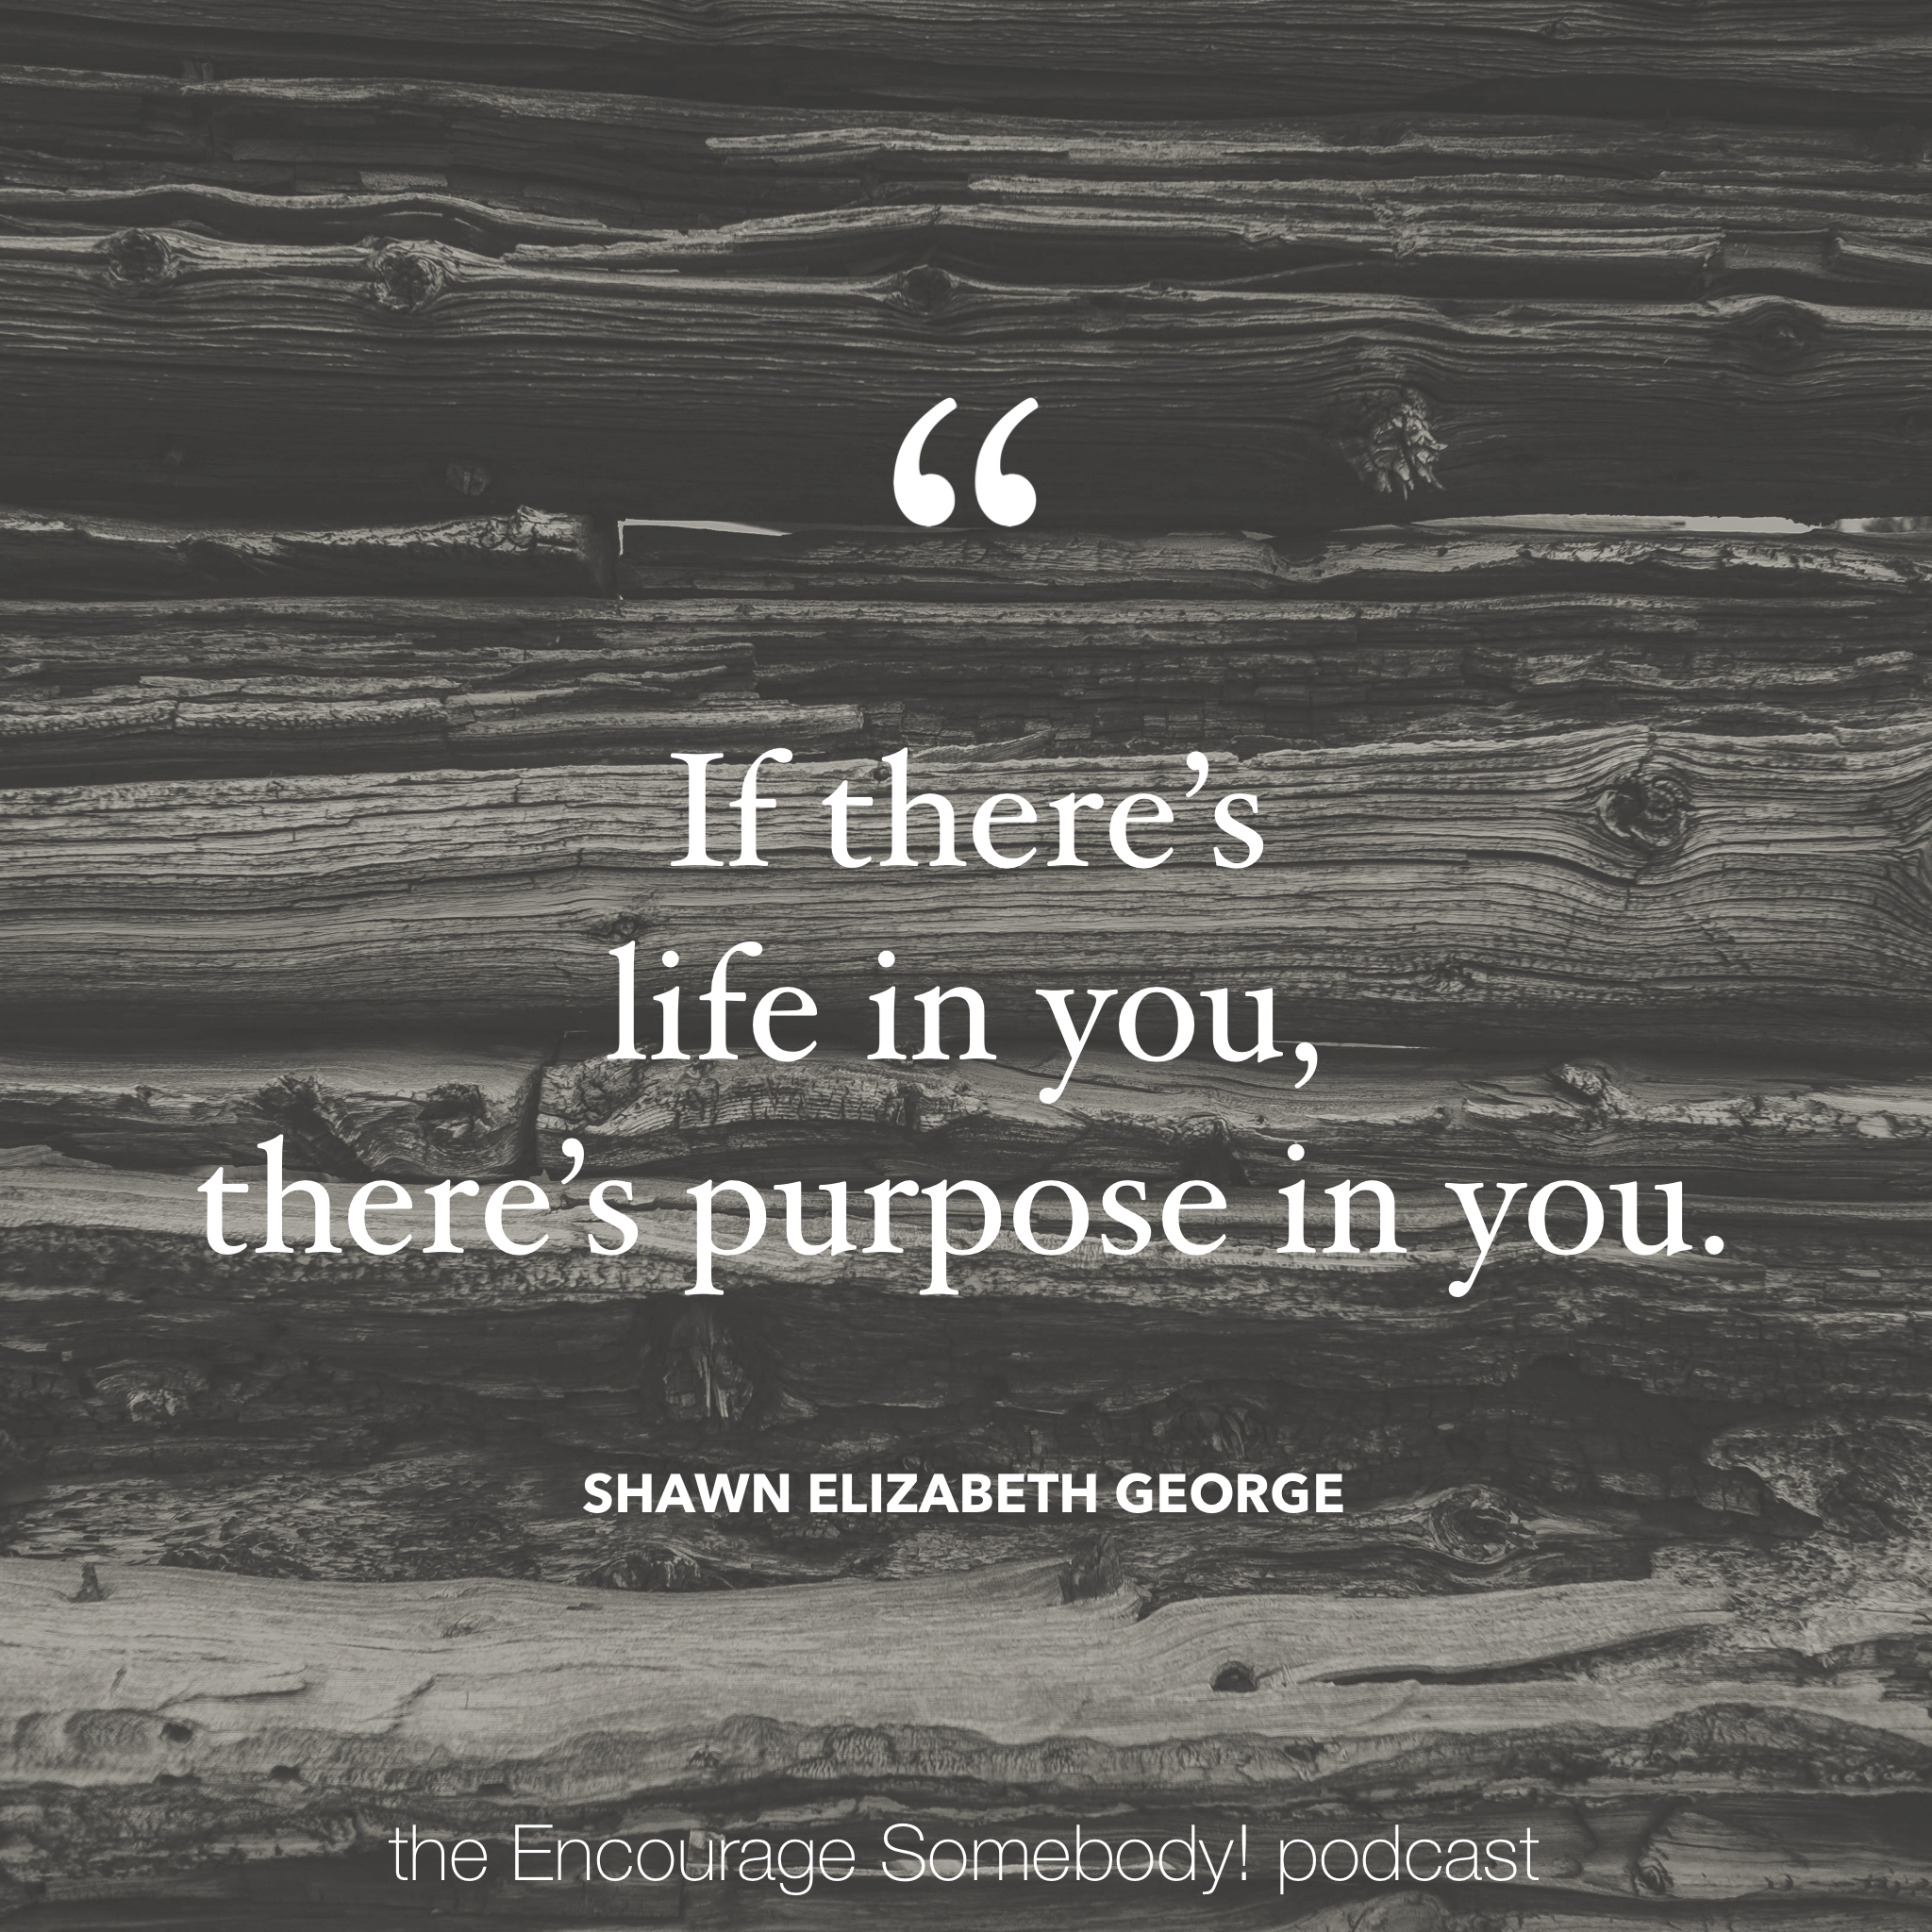 shawn-elizabeth-george-quote-on-purpose.PNG